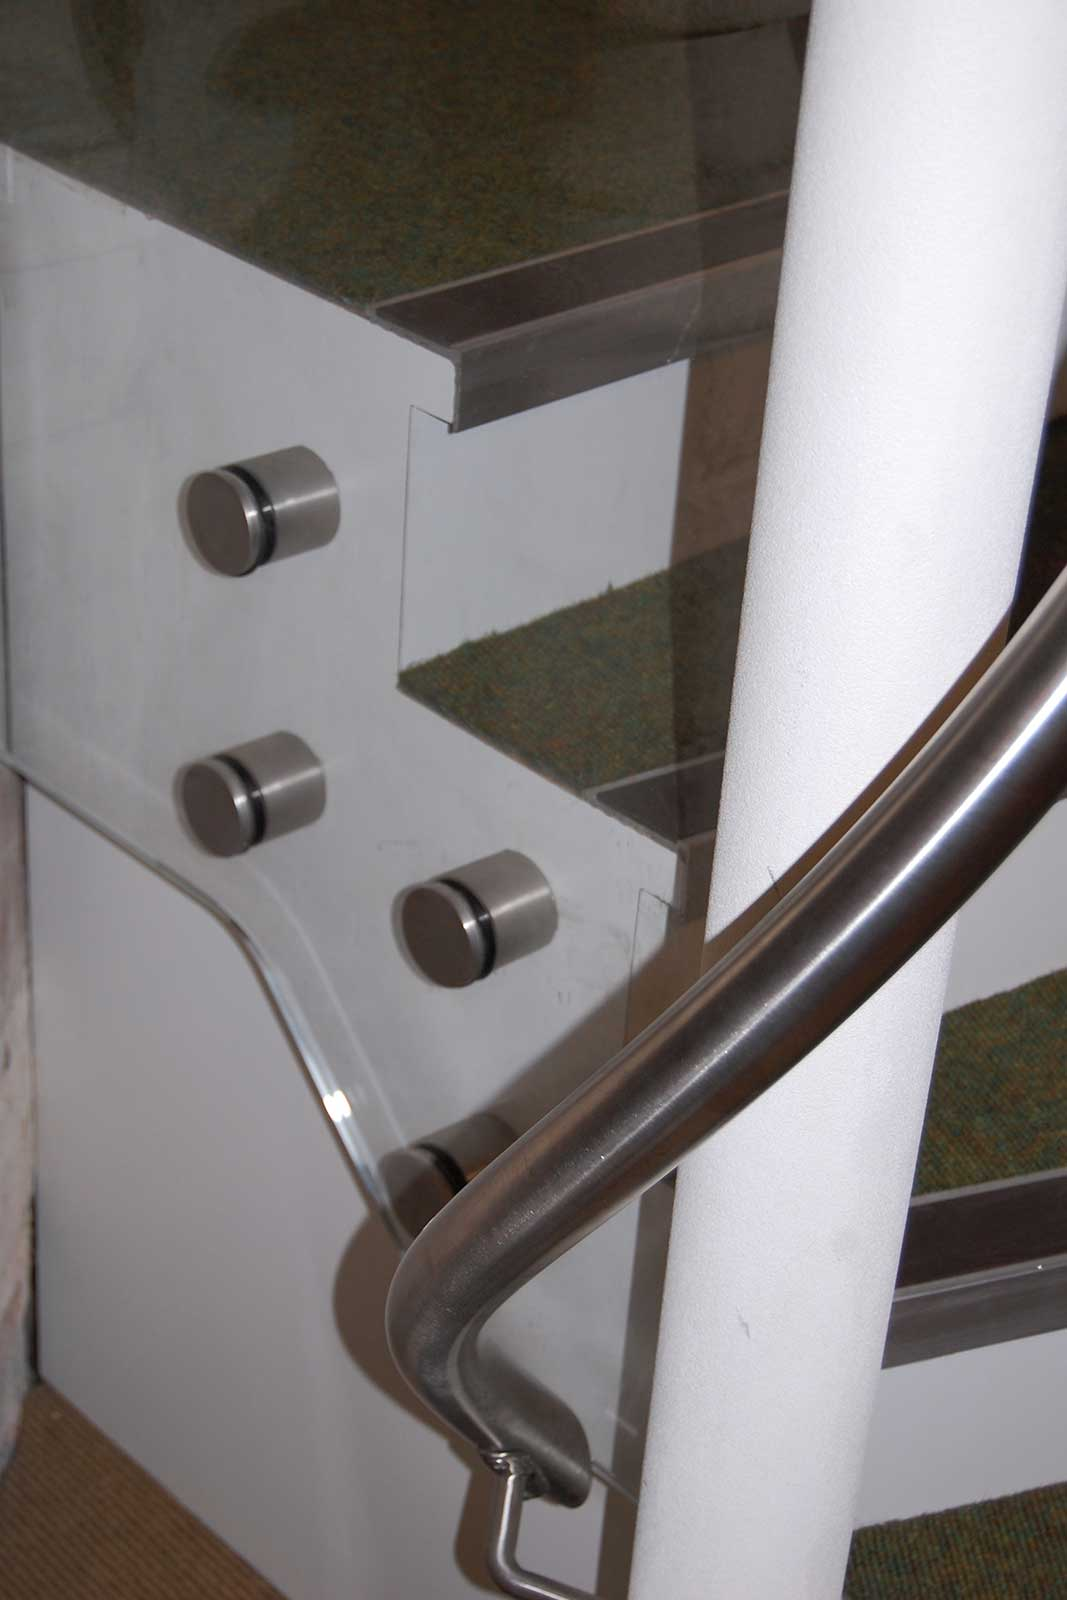 Glass Balustrade Hardware & Handrail, St. Andrew's Church